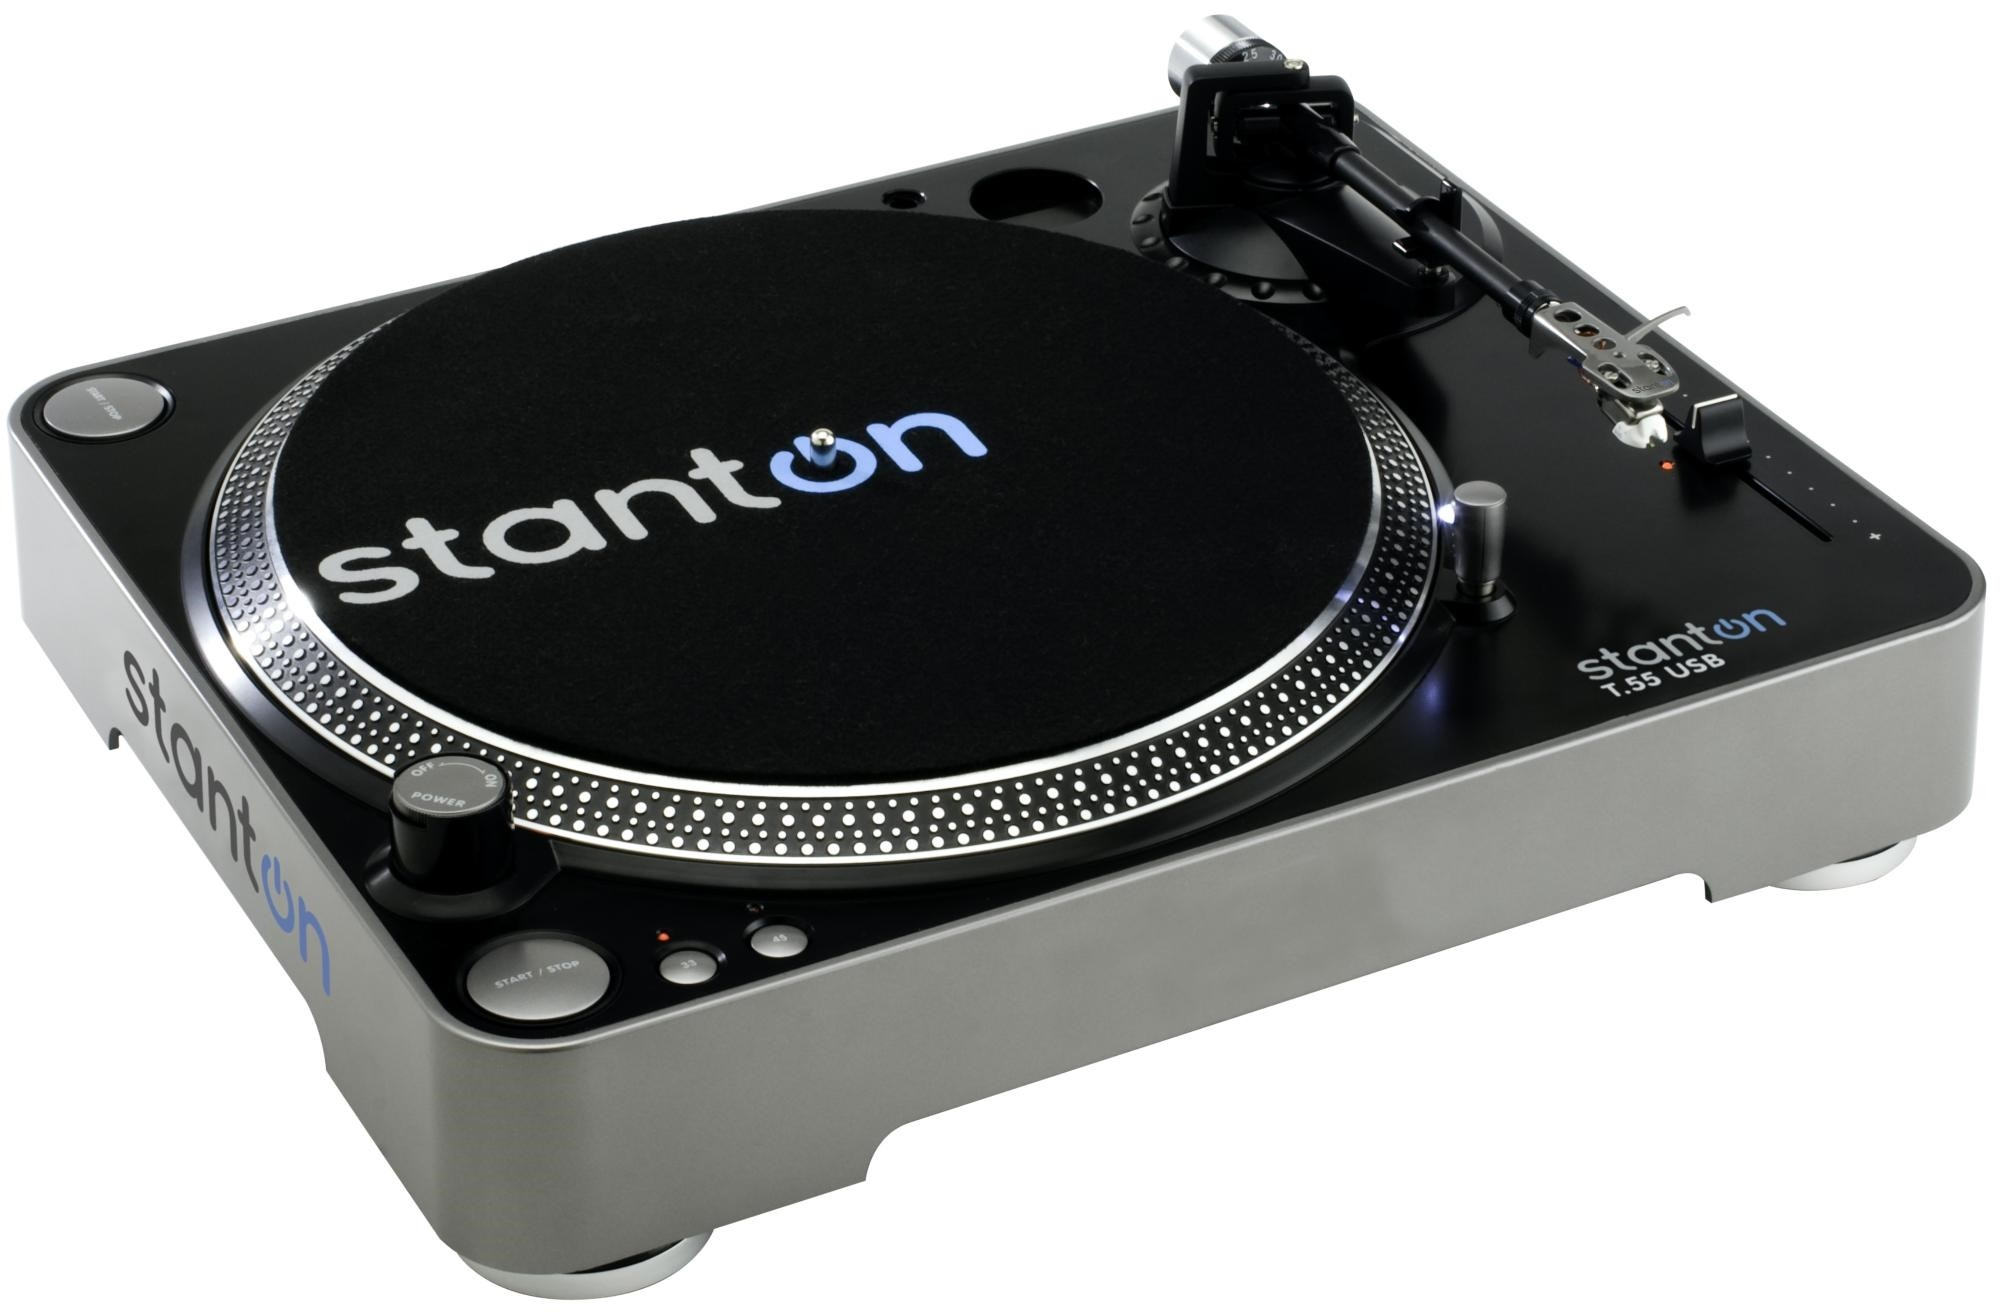 Stanton - T.55 USB Straight Arm Turntable